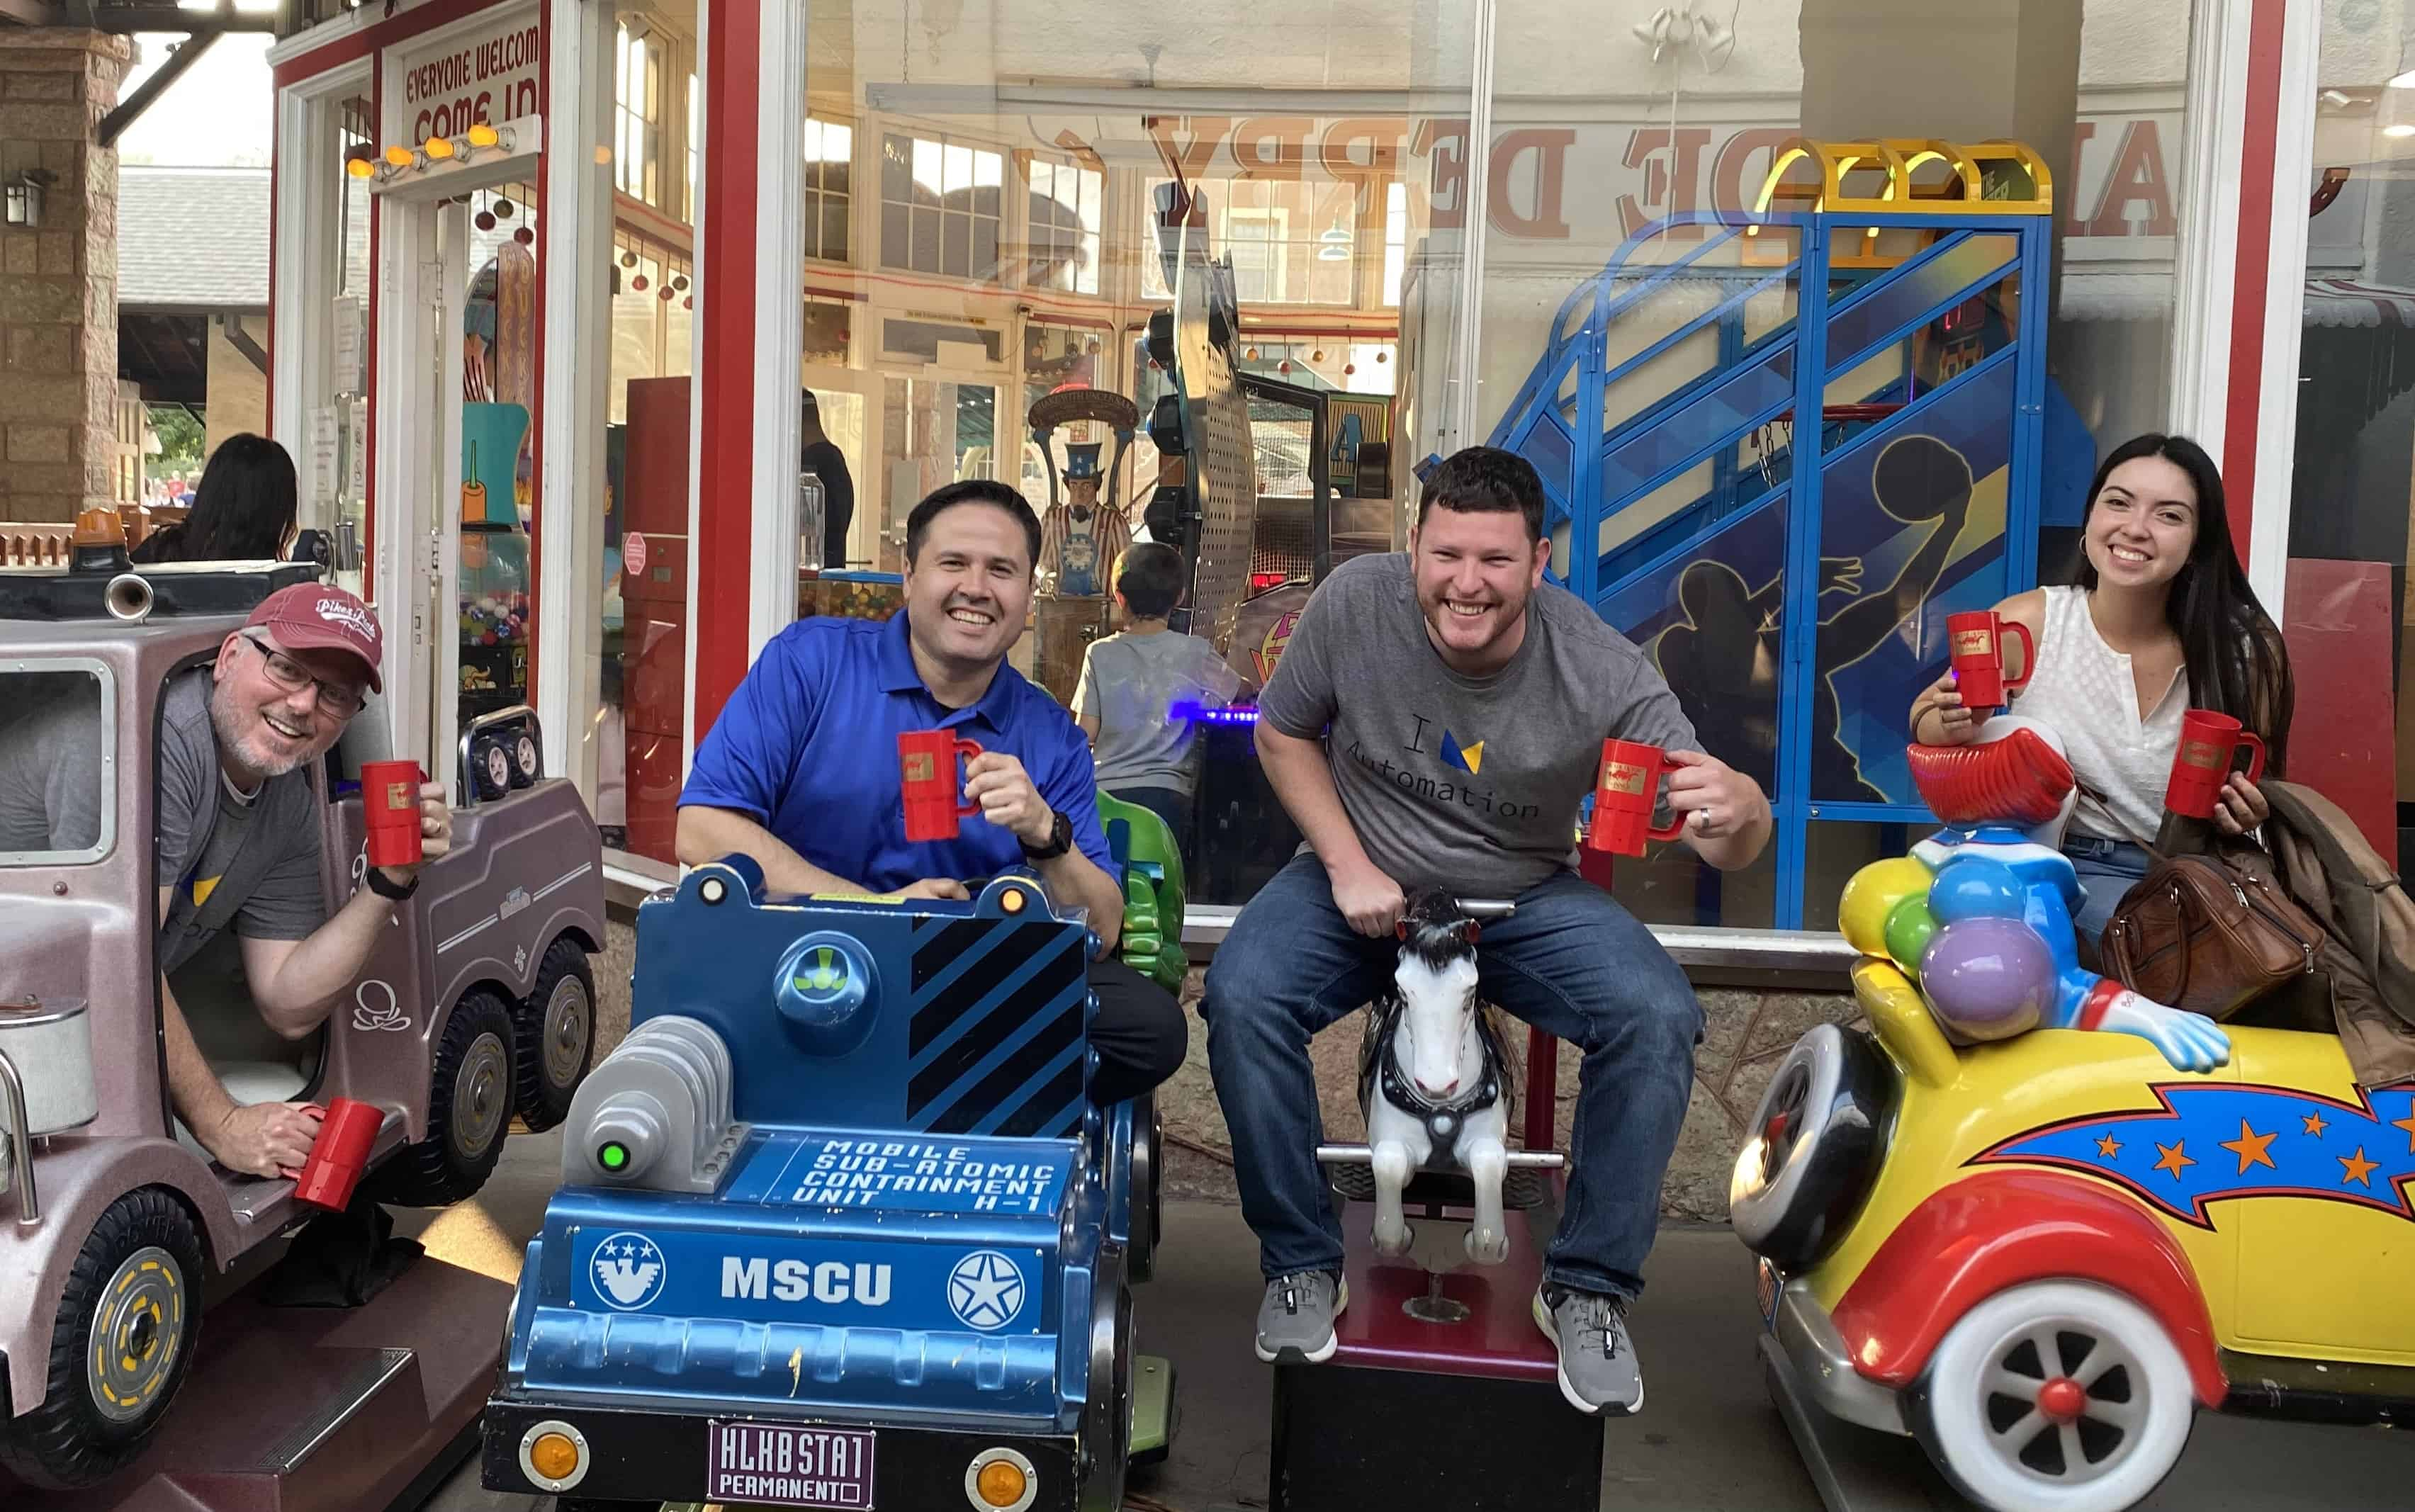 Solubit team members at the penny arcade.